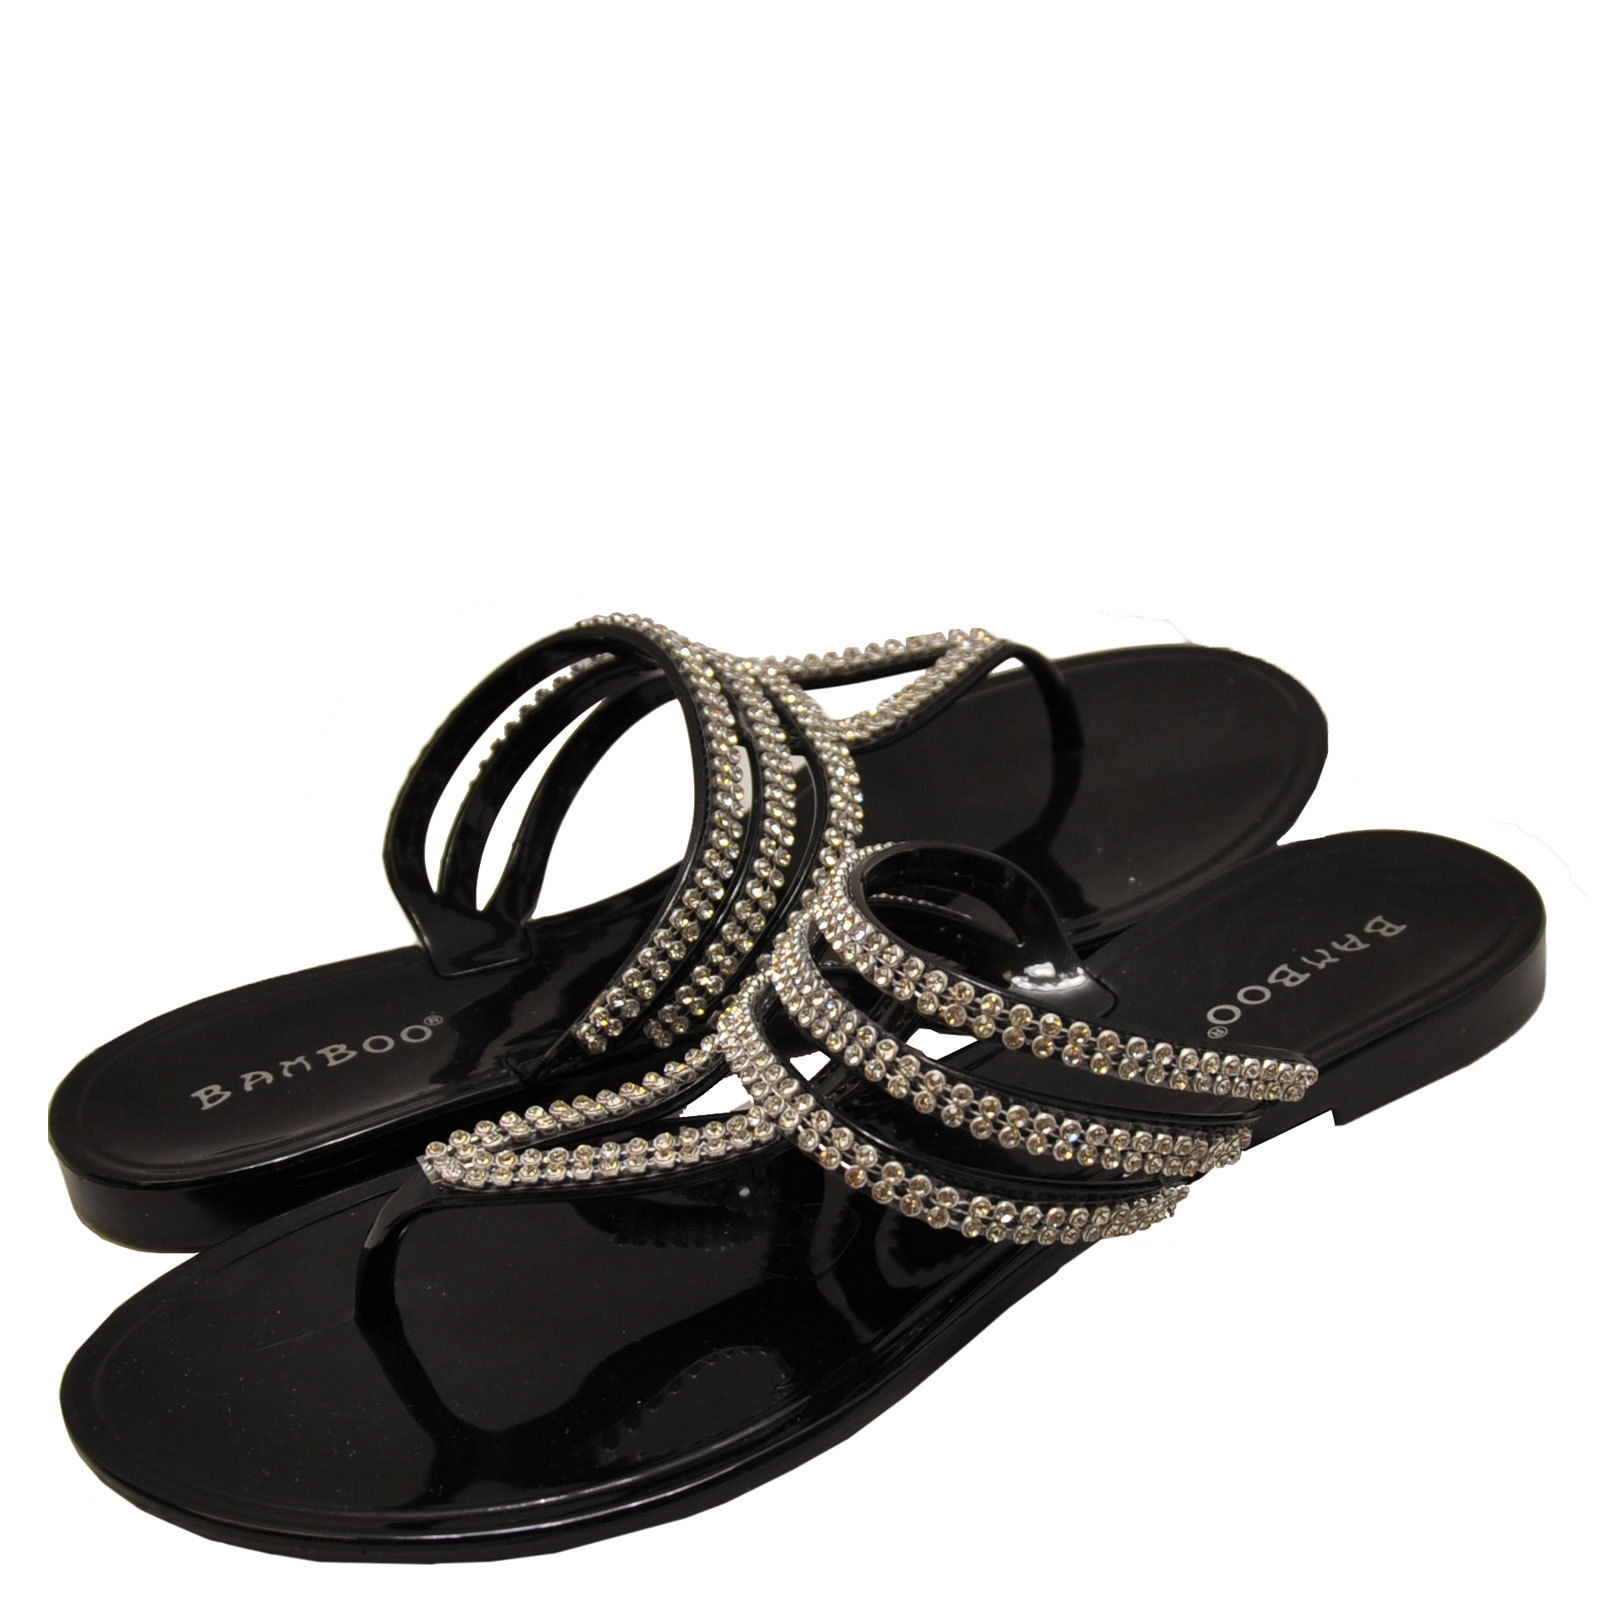 Bamboo Women's Claire 23 T-Strap Embellished Jelly Sandals